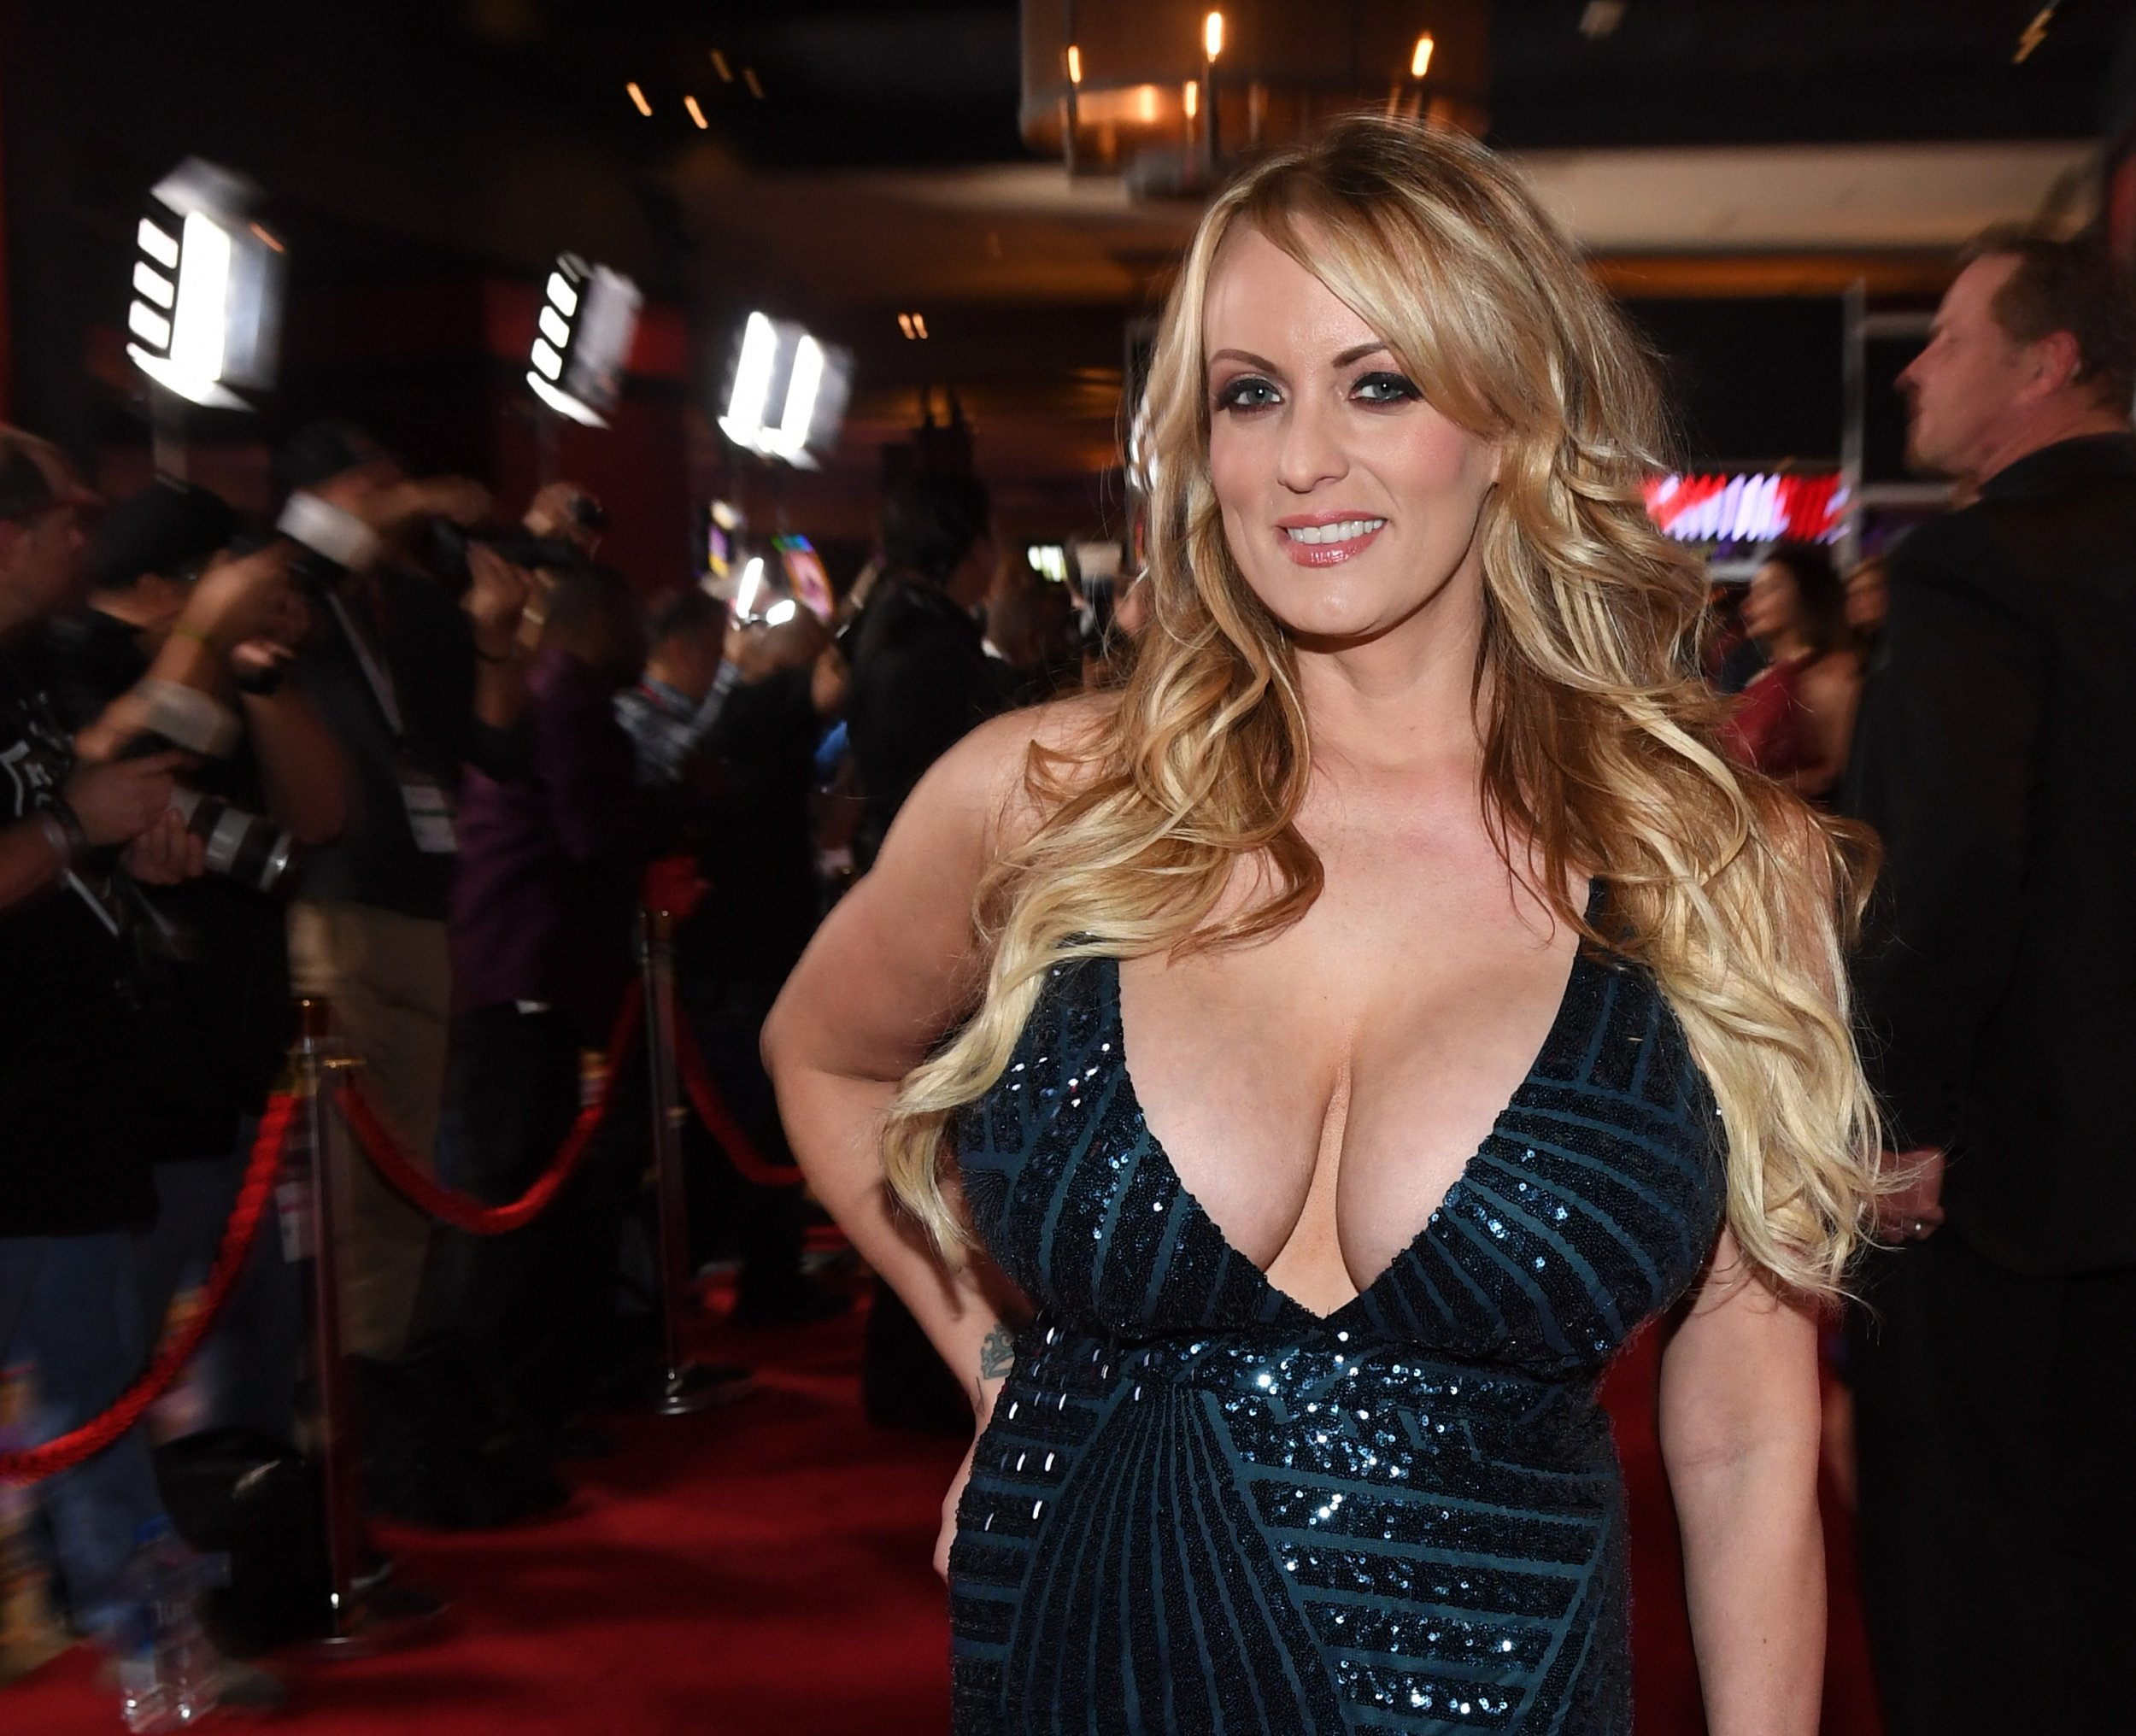 Theres No Monica Lewinsky Type Dress For Stormy Daniels, Her Lawyer Says About -5275